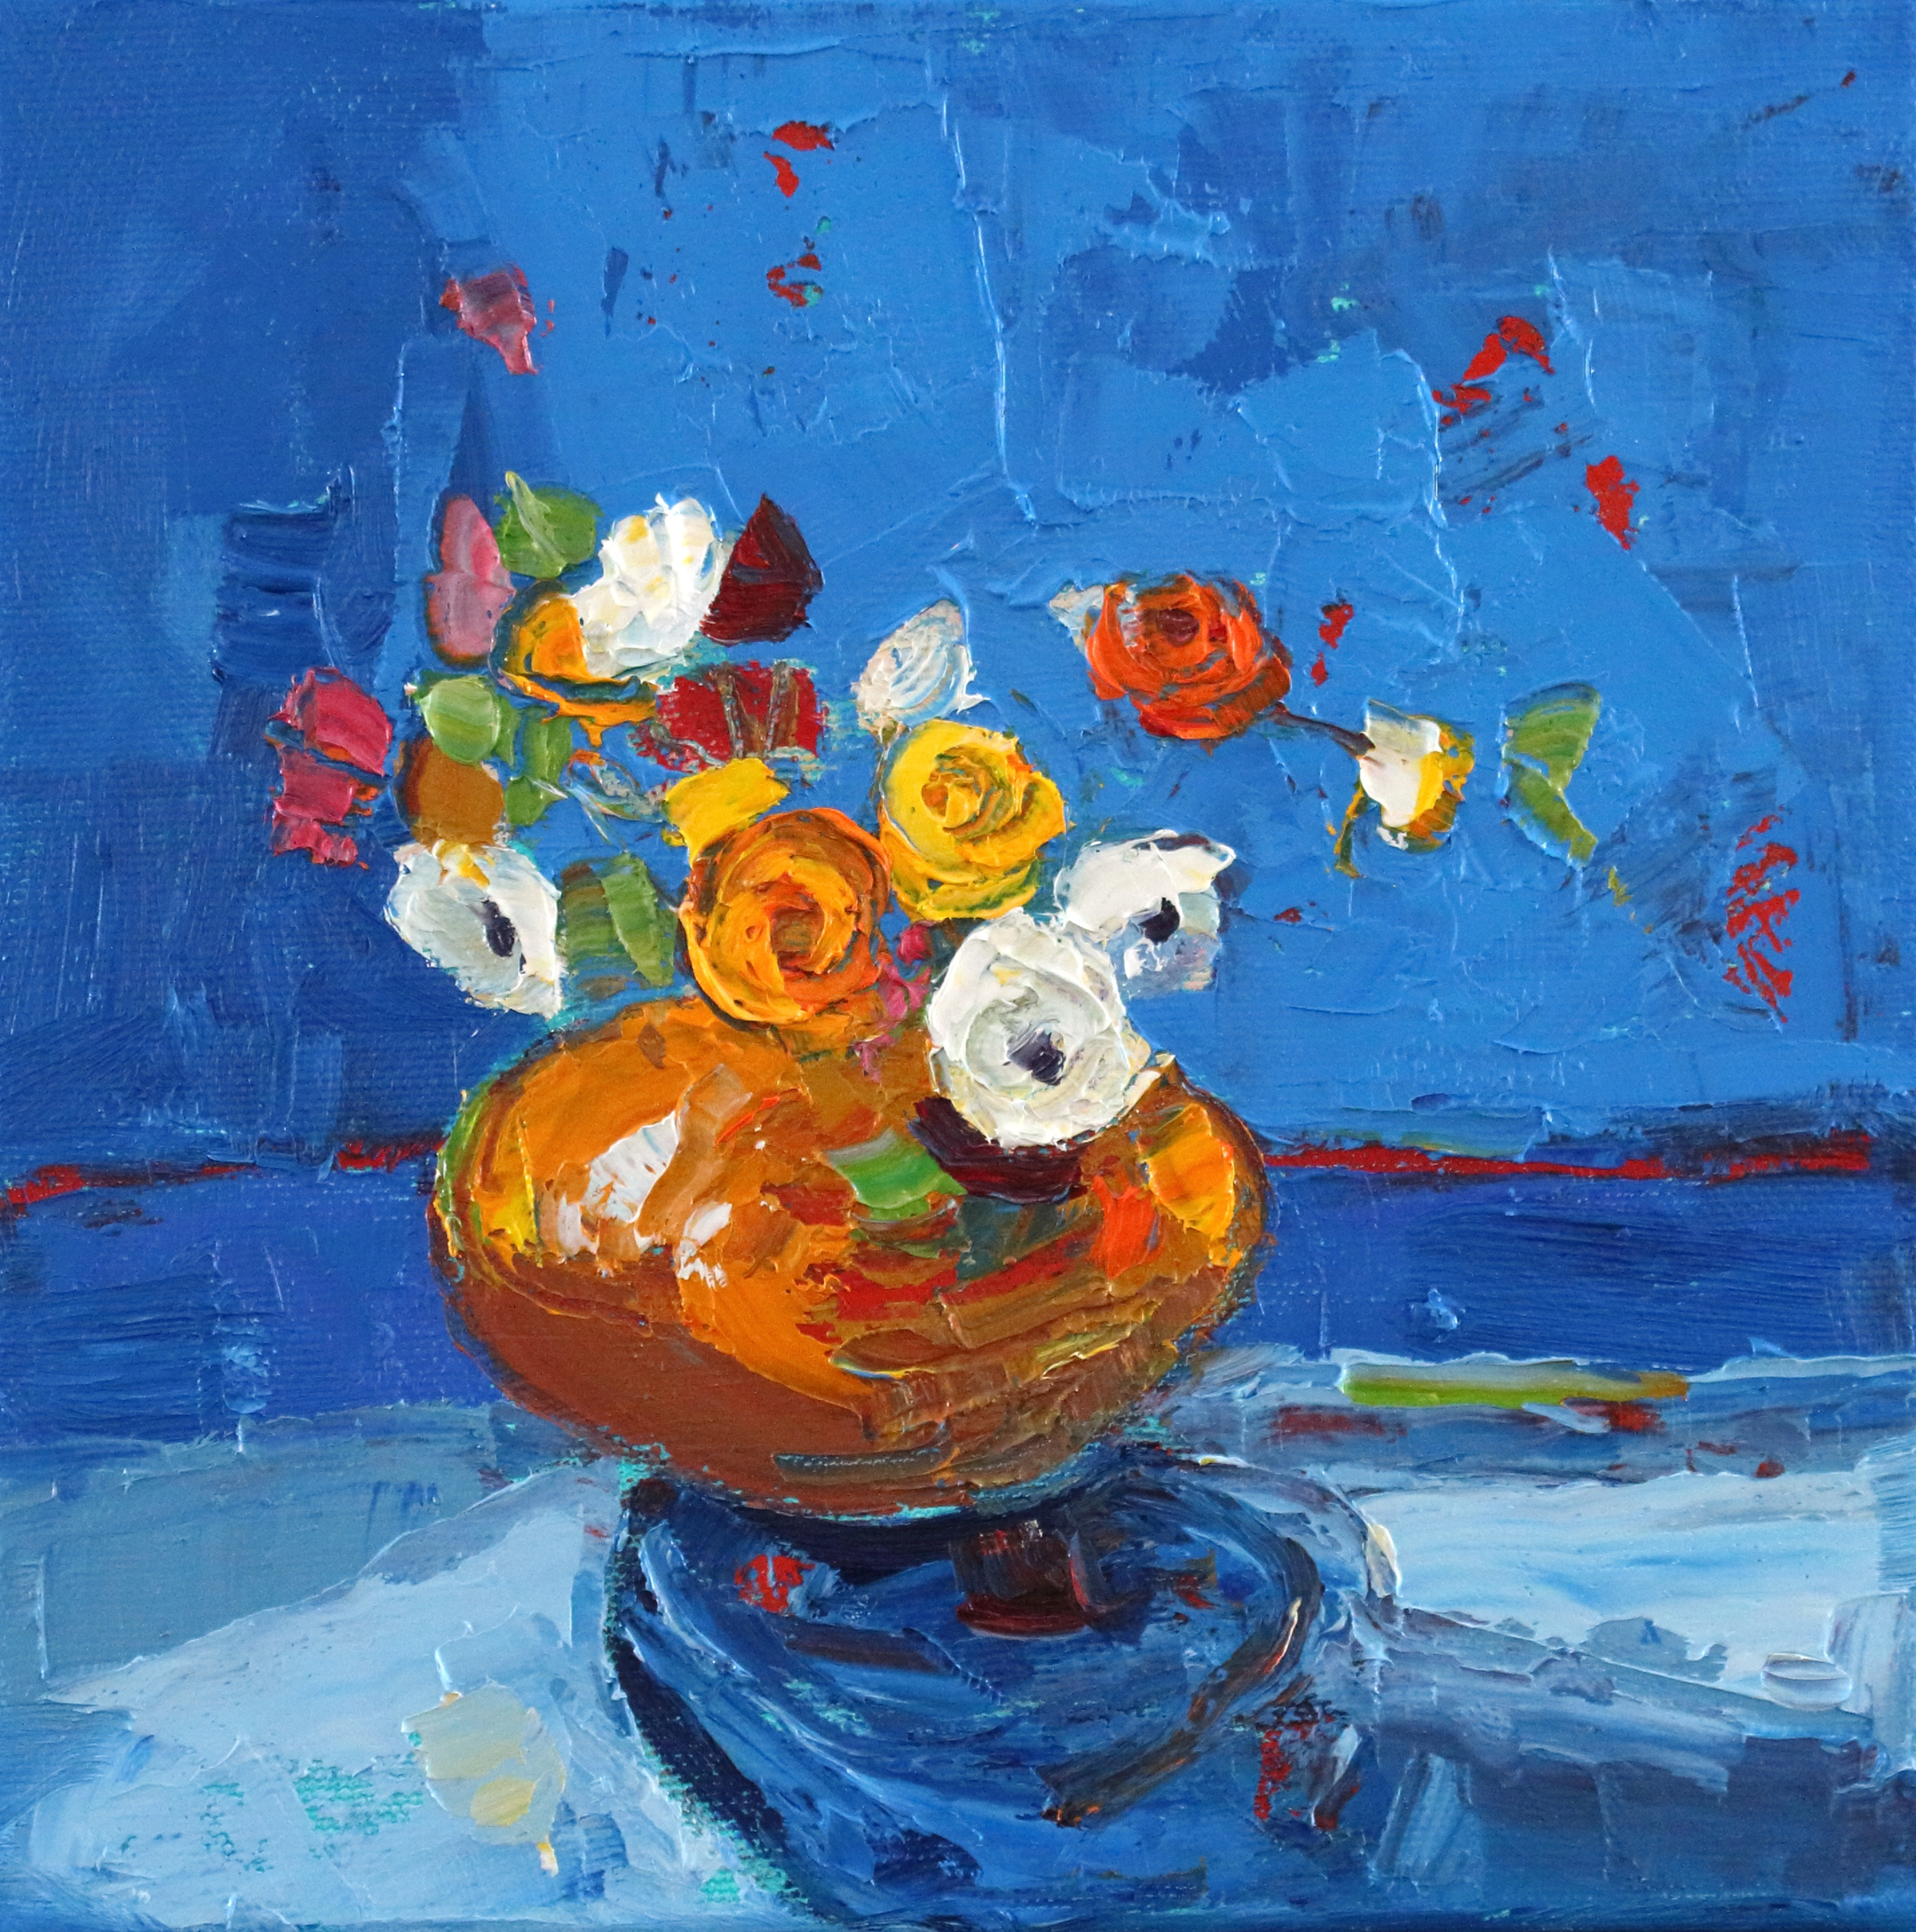 Artist: Kirsty Wither  Title: Copper and Cobalt  Size: 20 x 20 cm  Medium: Oil on Canvas  SOLD